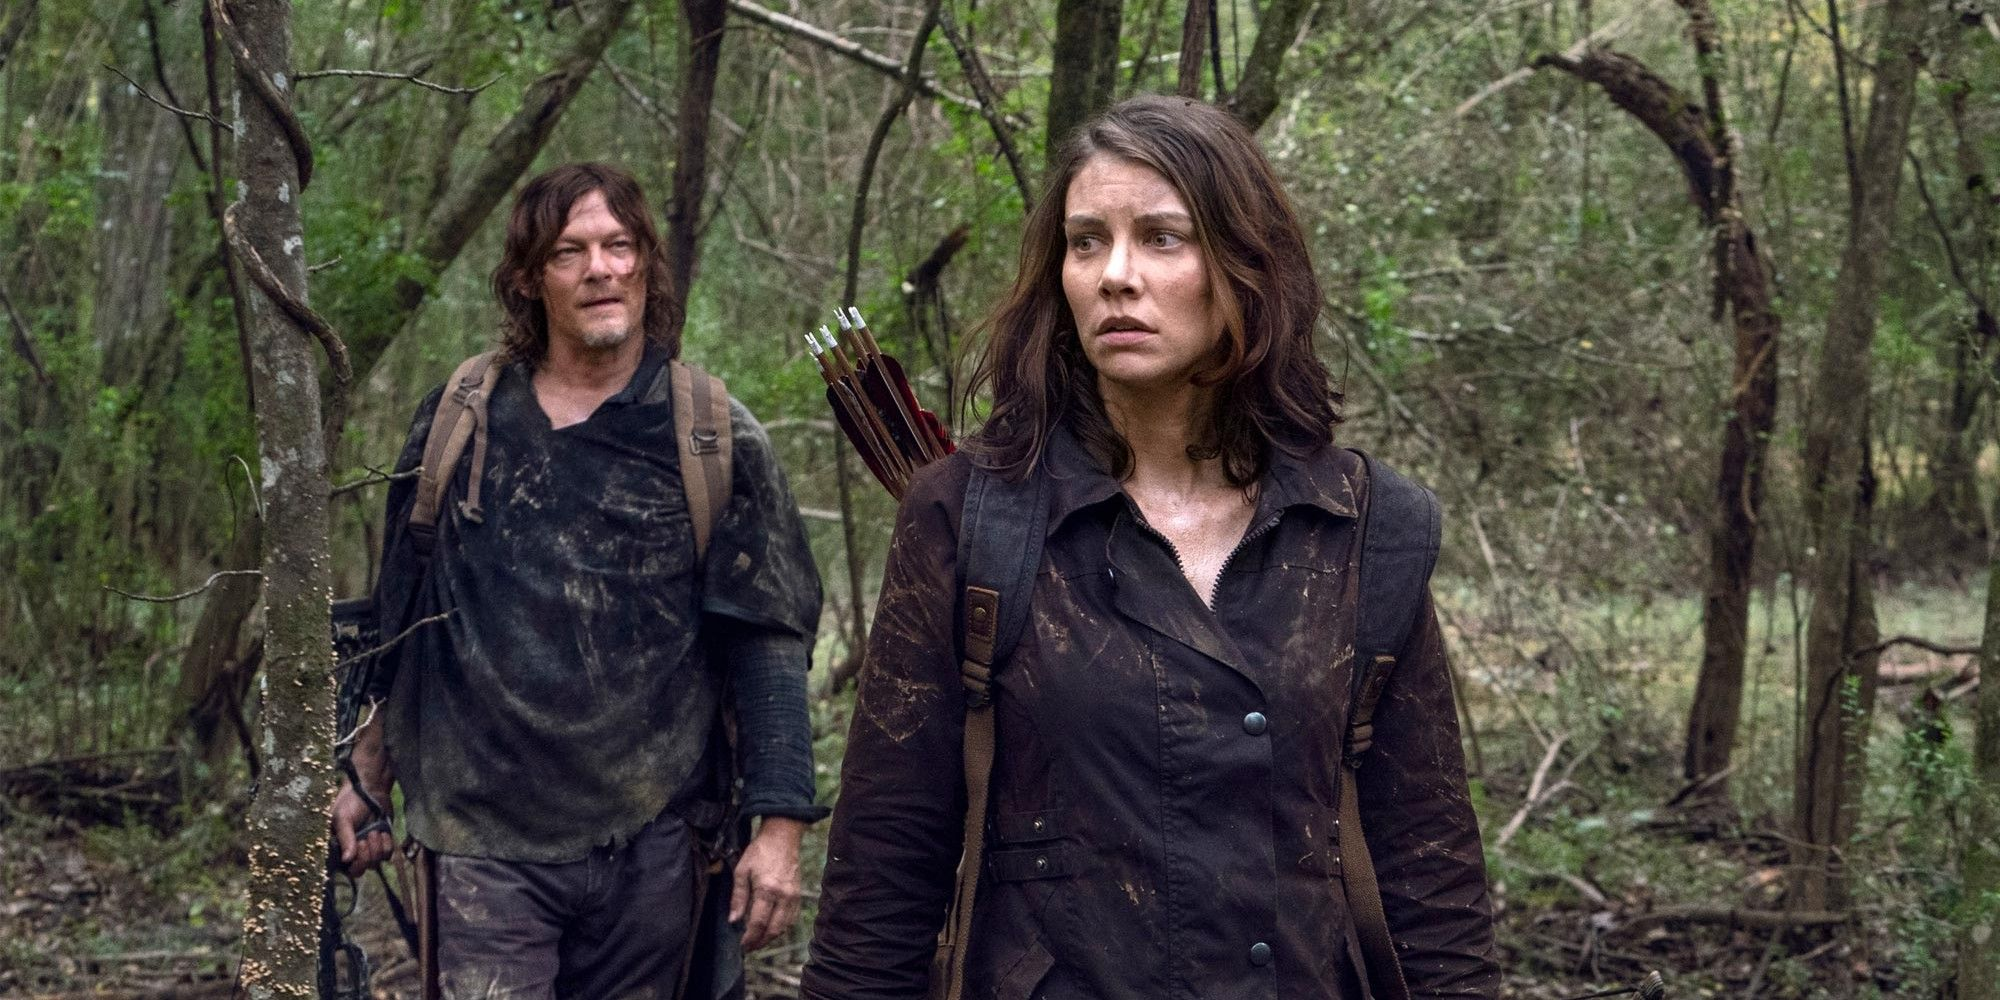 How The Walking Dead Season 11 Plans to Return to Its Apocalyptic Roots